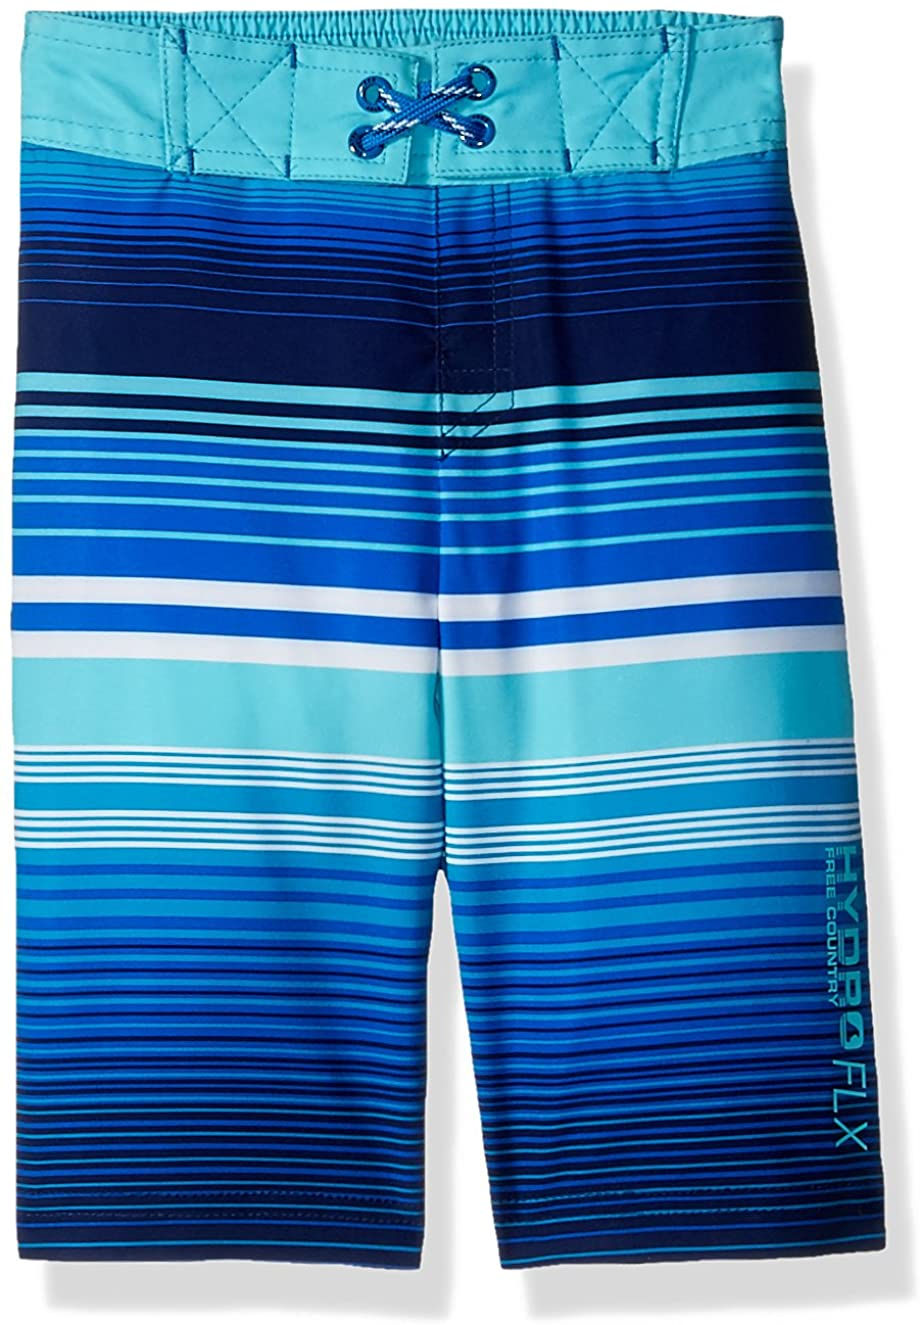 Free Country Boys' Little Ripple Effects Print Board Shorts